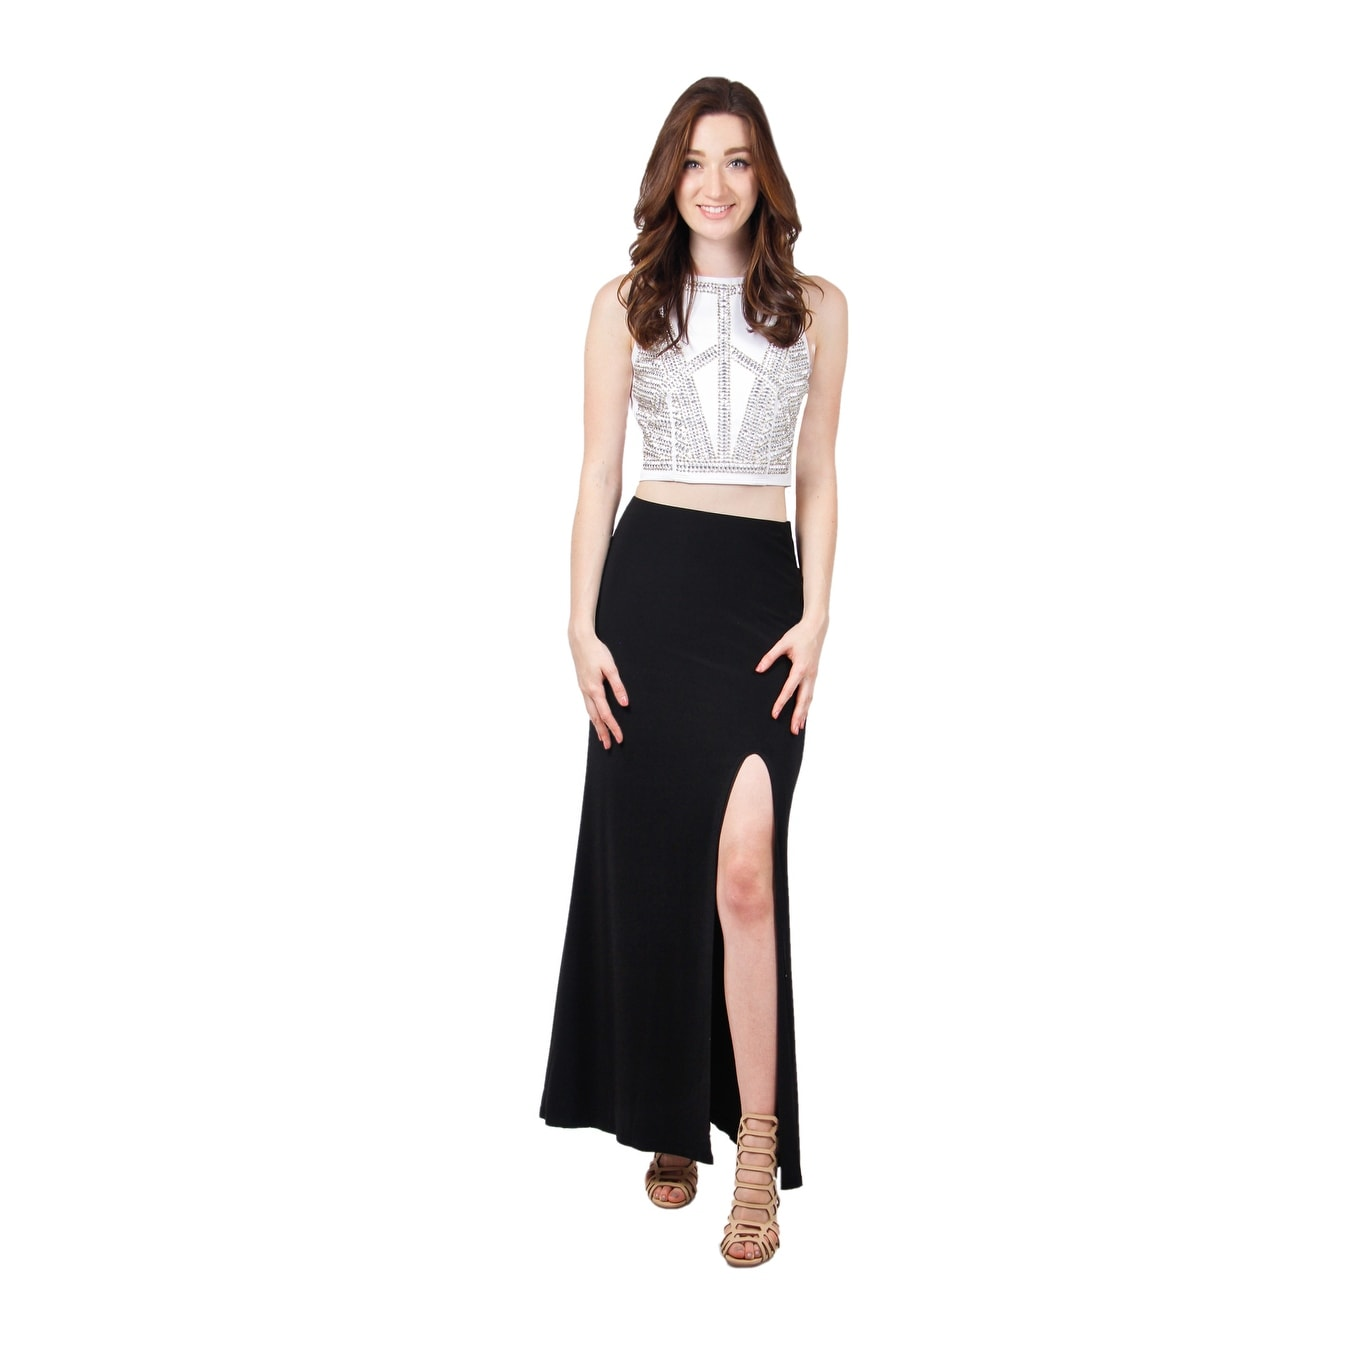 8b3a737b464 Shop Two Piece Beaded Jersey Dress - Free Shipping Today - Overstock -  14575867